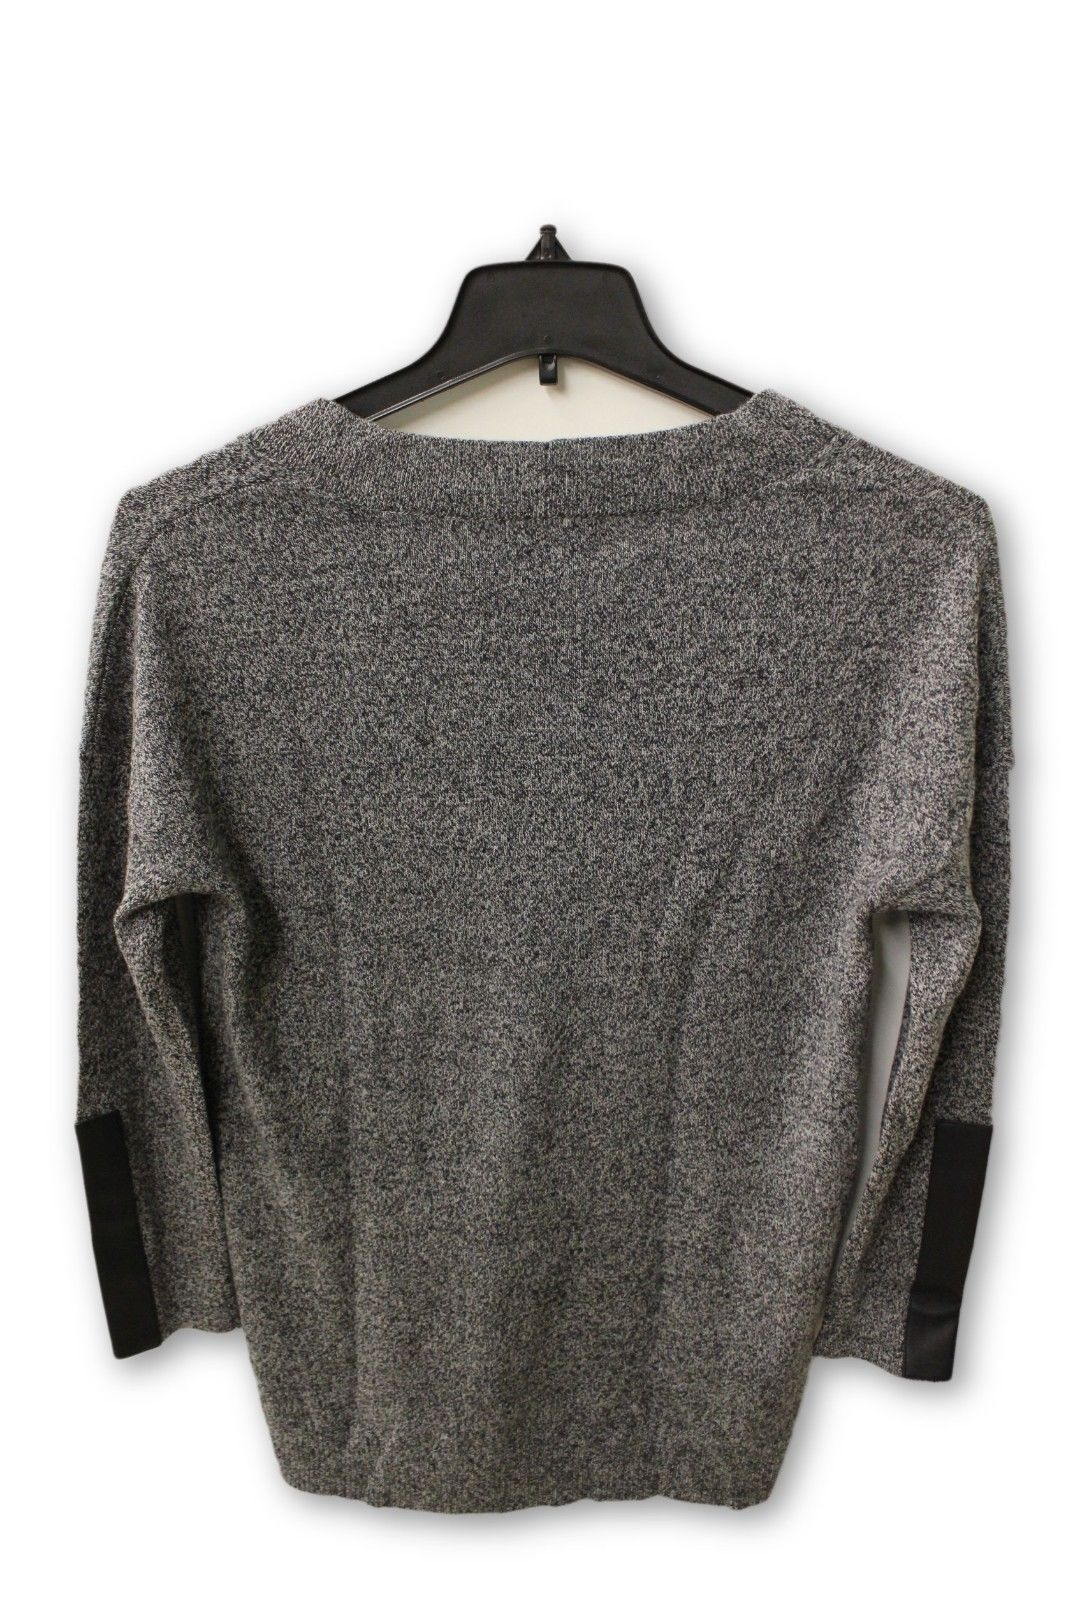 C by Bloomingdale's Women's Cashmere - Gray V Neck Sweater L NWT